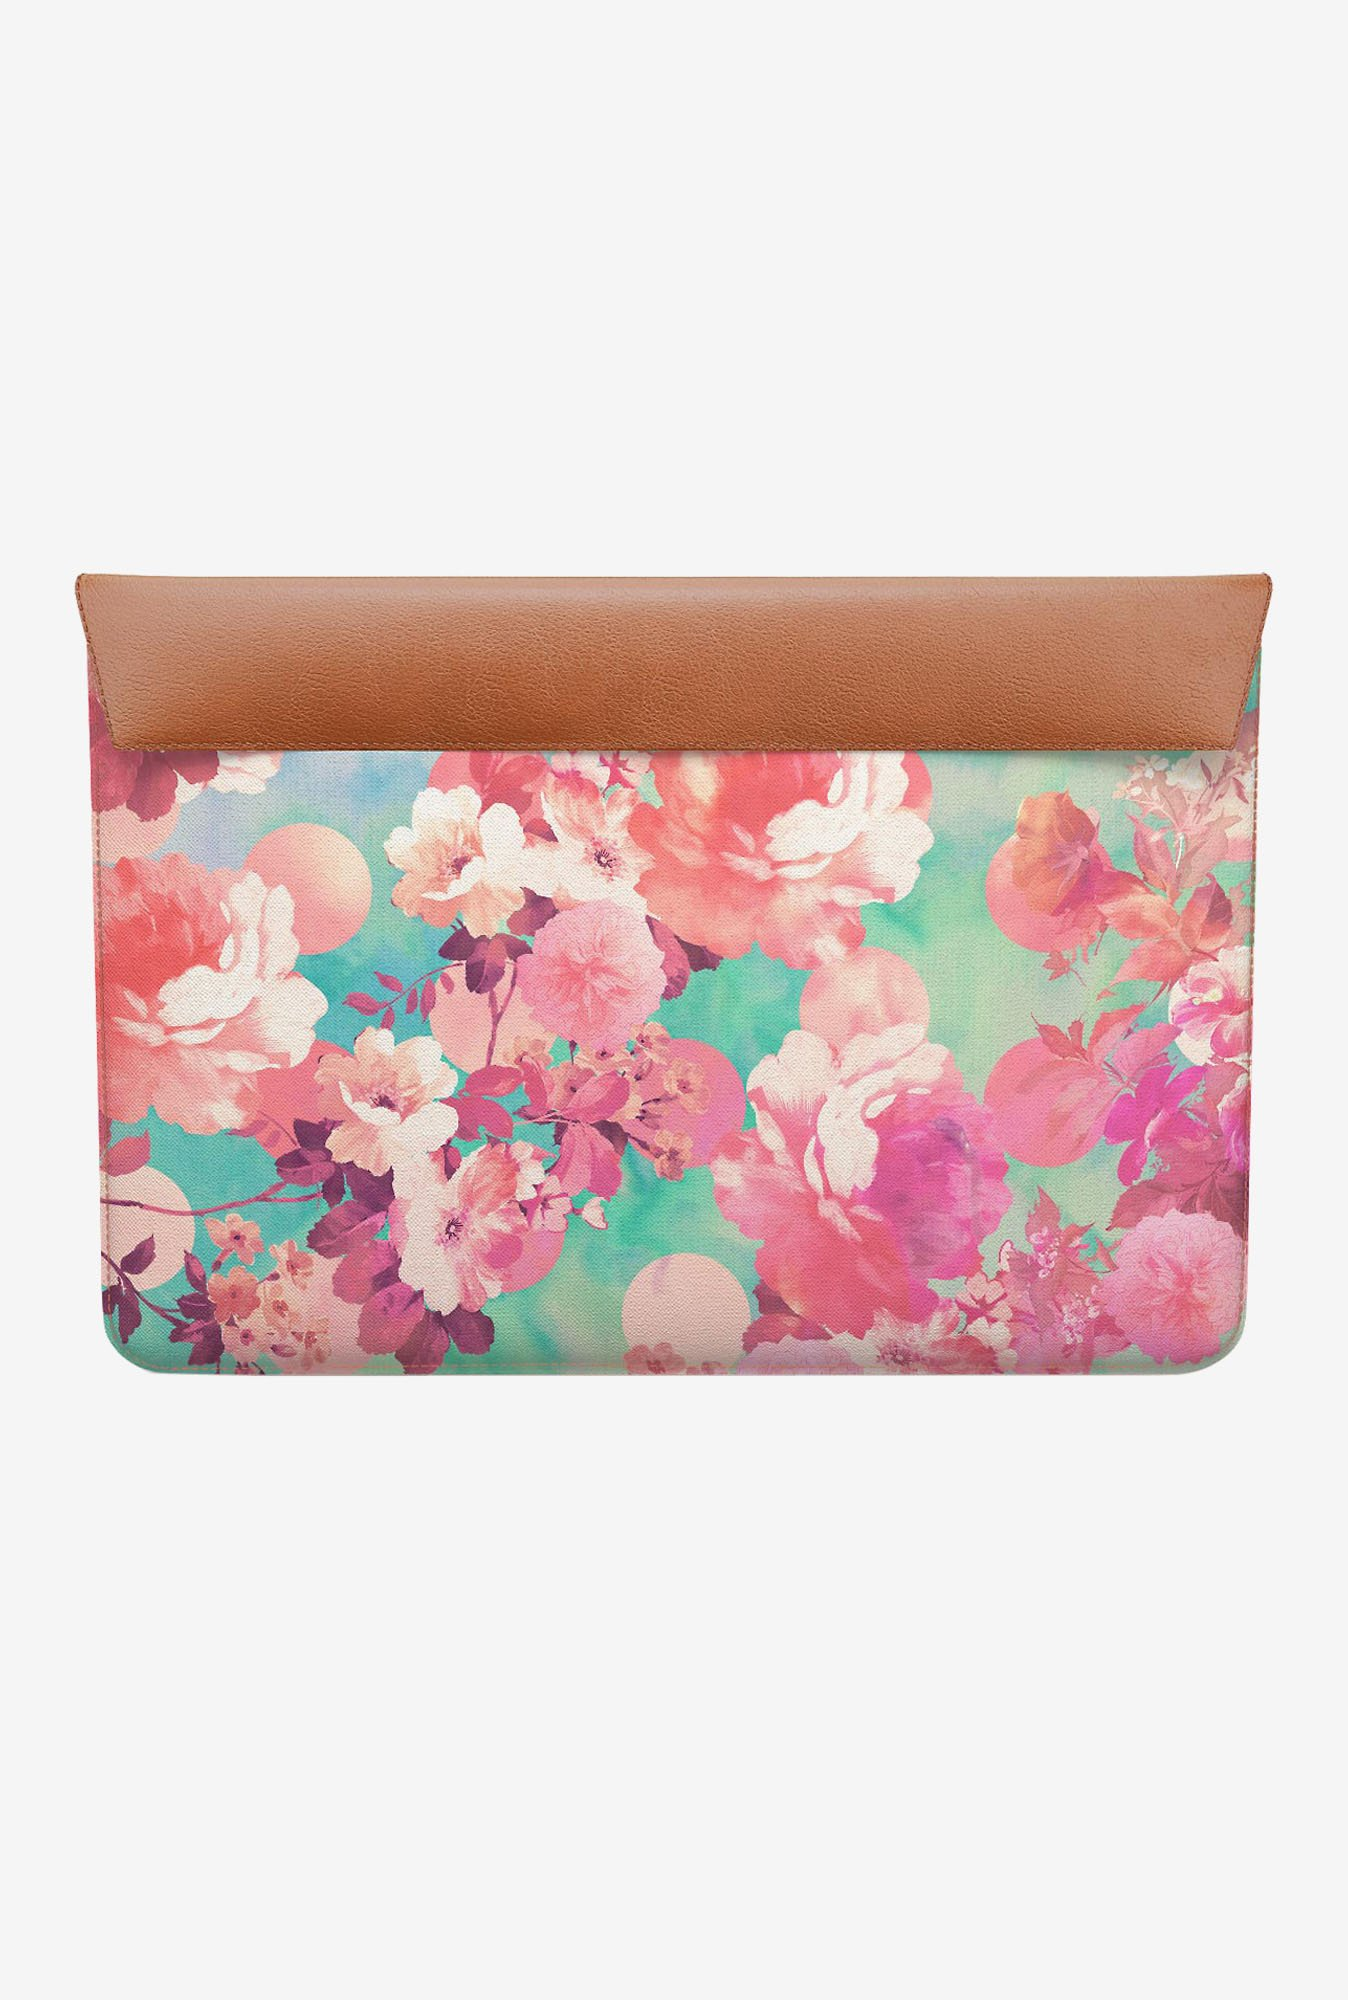 DailyObjects Floral Polka MacBook Air 11 Envelope Sleeve